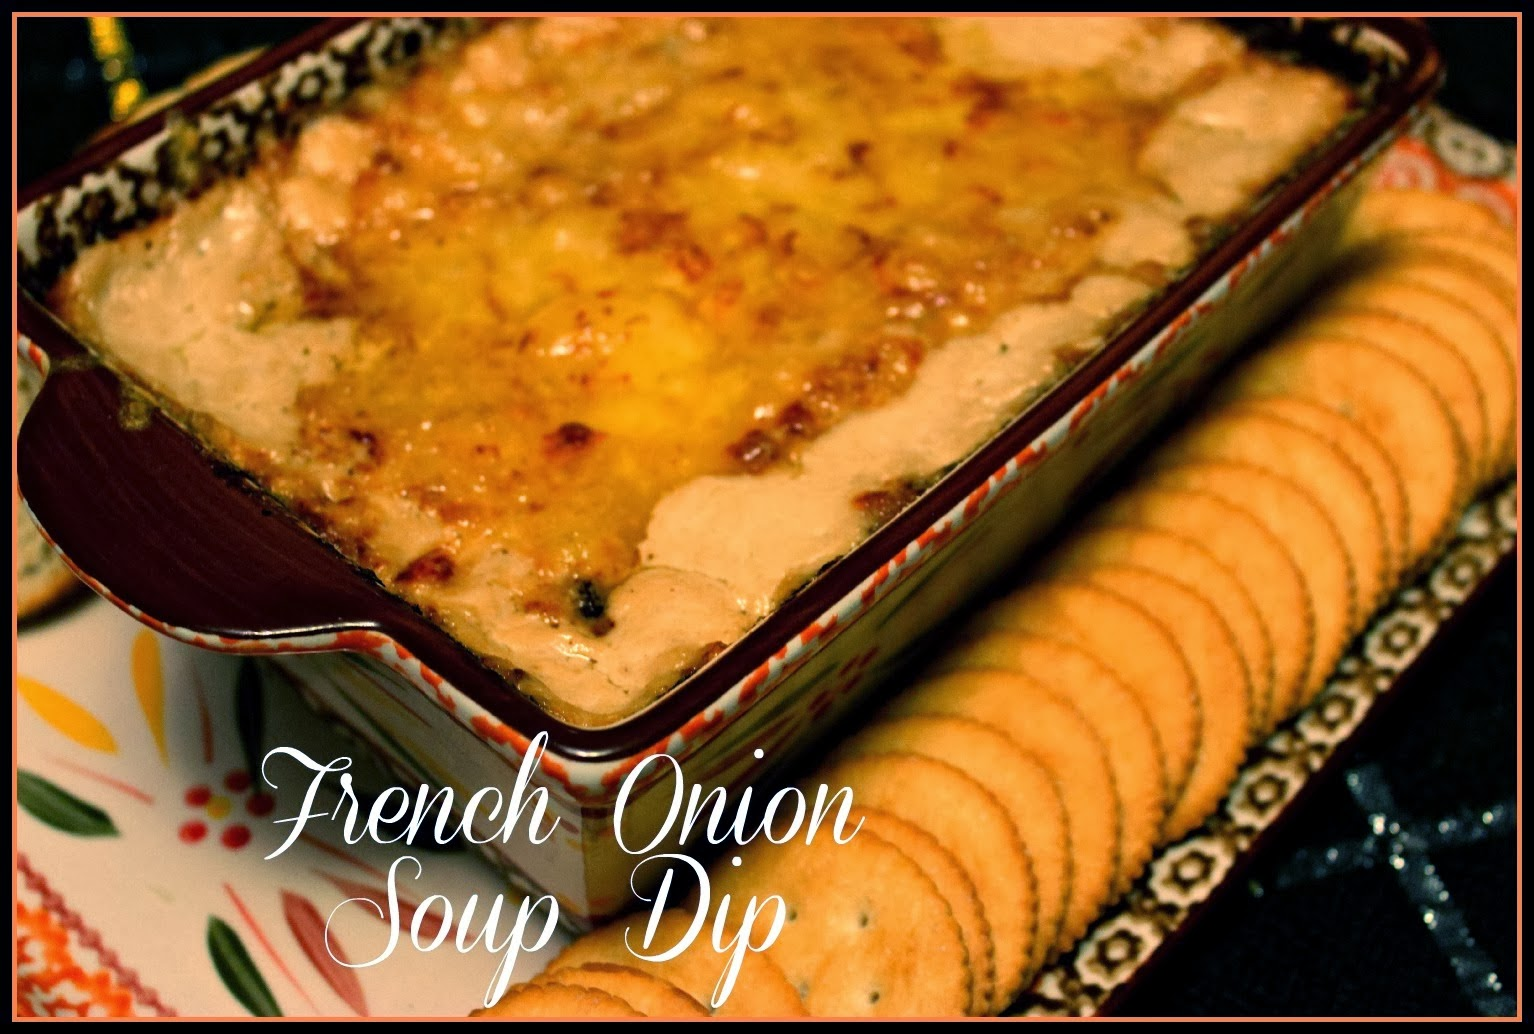 French Onion Soup Dip!